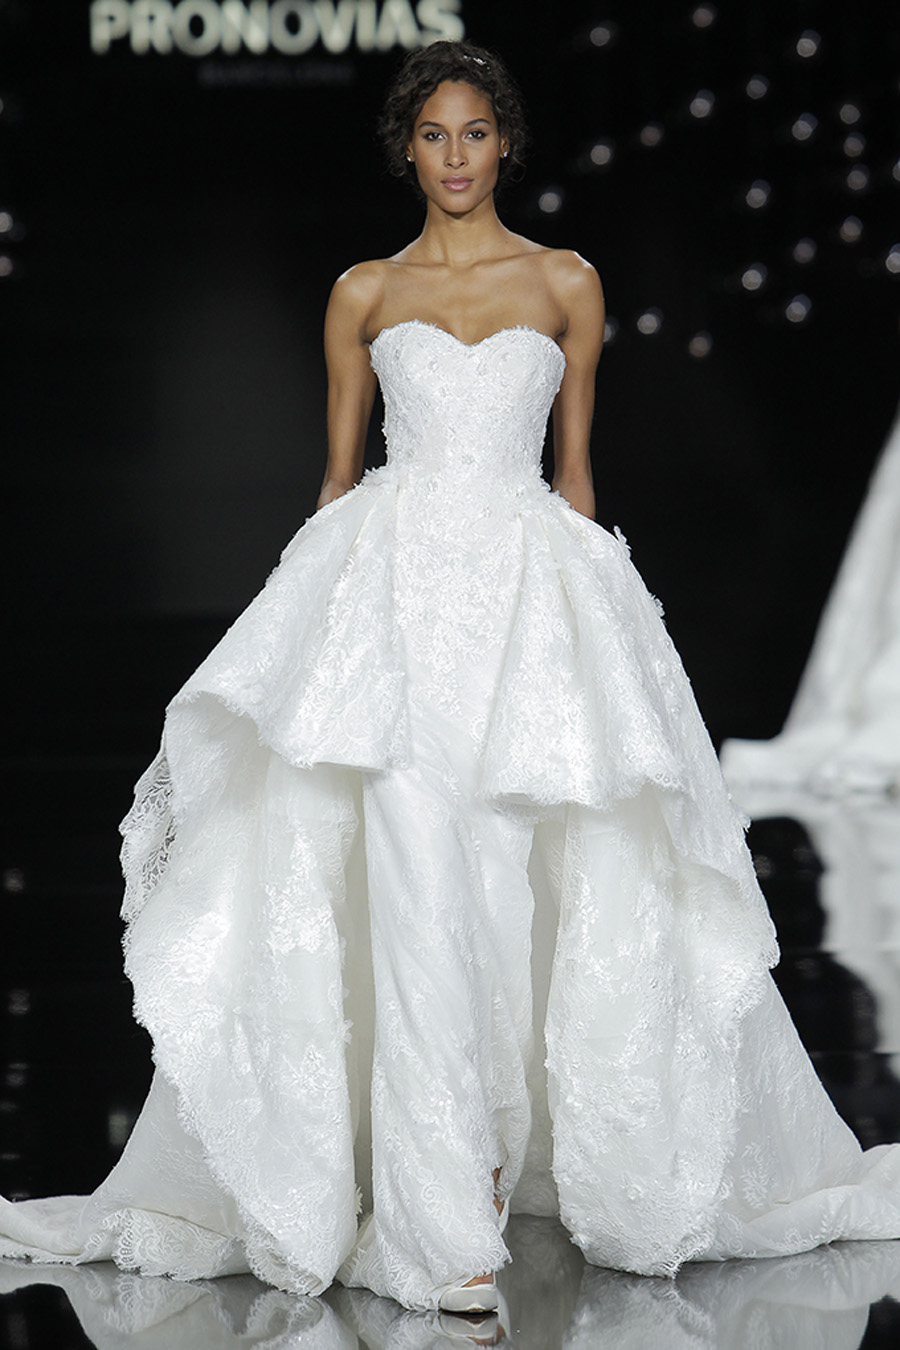 Pronovias Gown Nancy modeled by Cindy Bruna